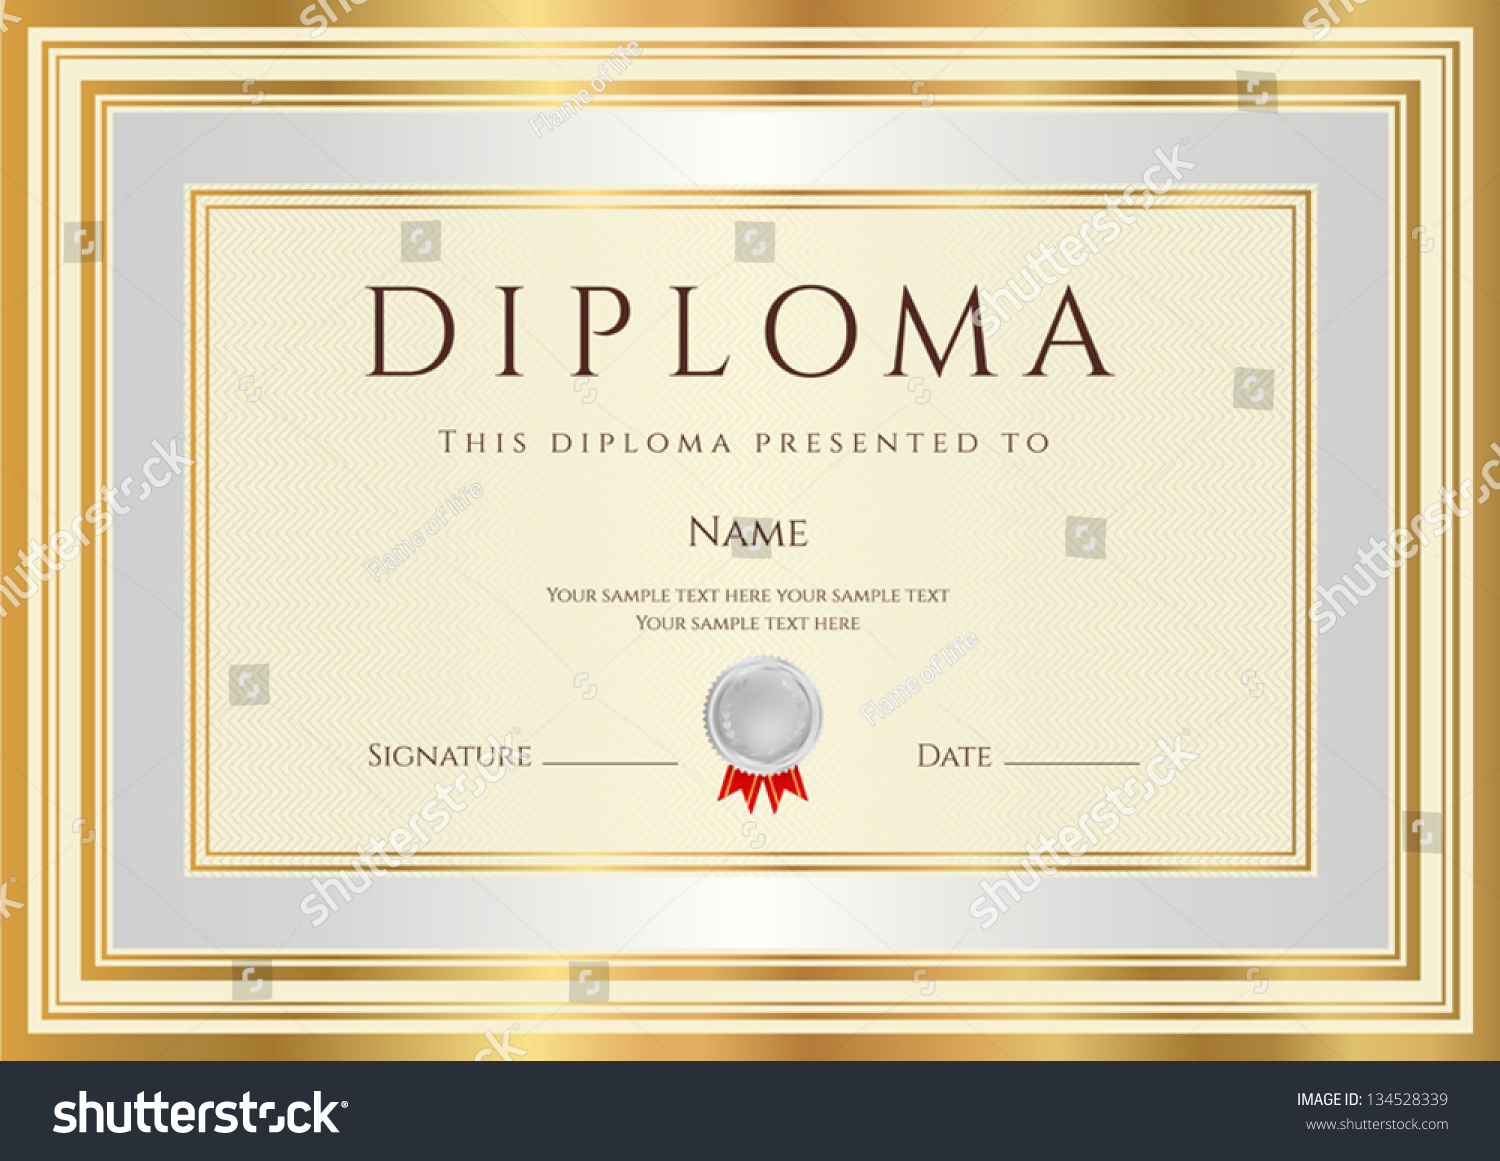 how to become rich with a high school diploma